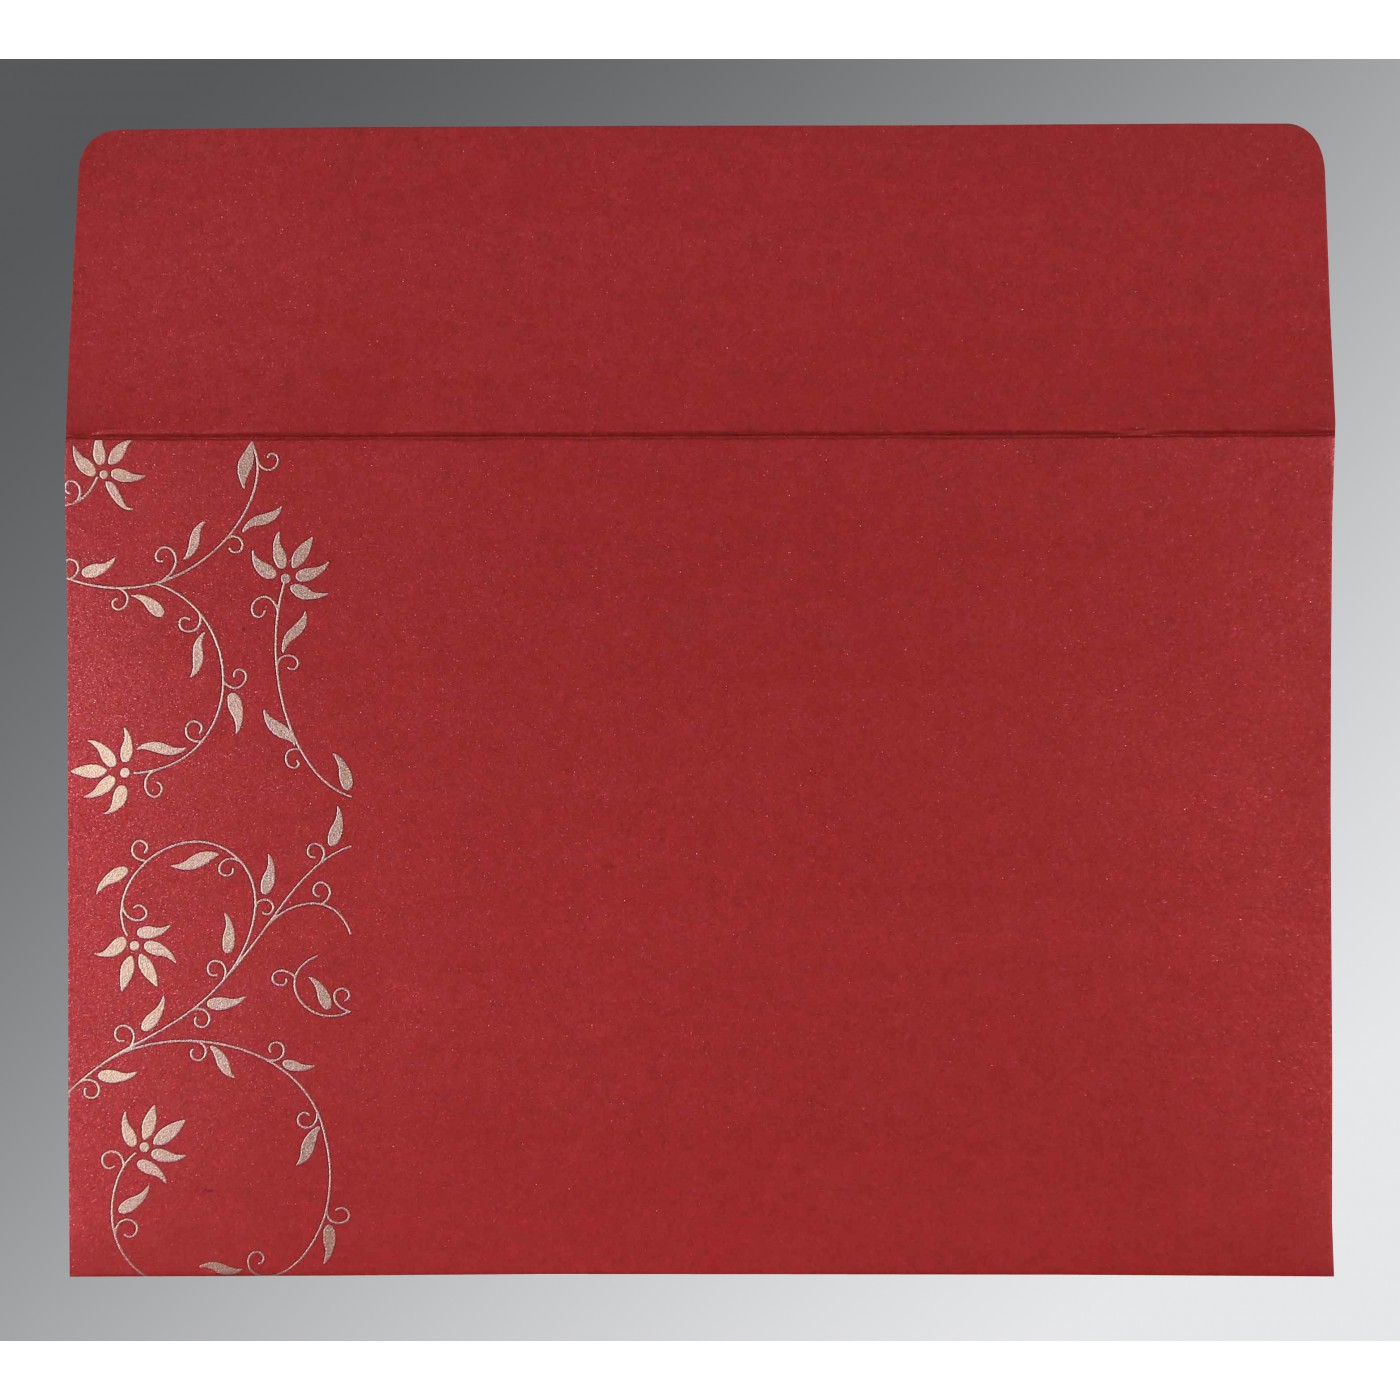 Fine What Goes On Wedding Invitations Gallery - Invitations and ...